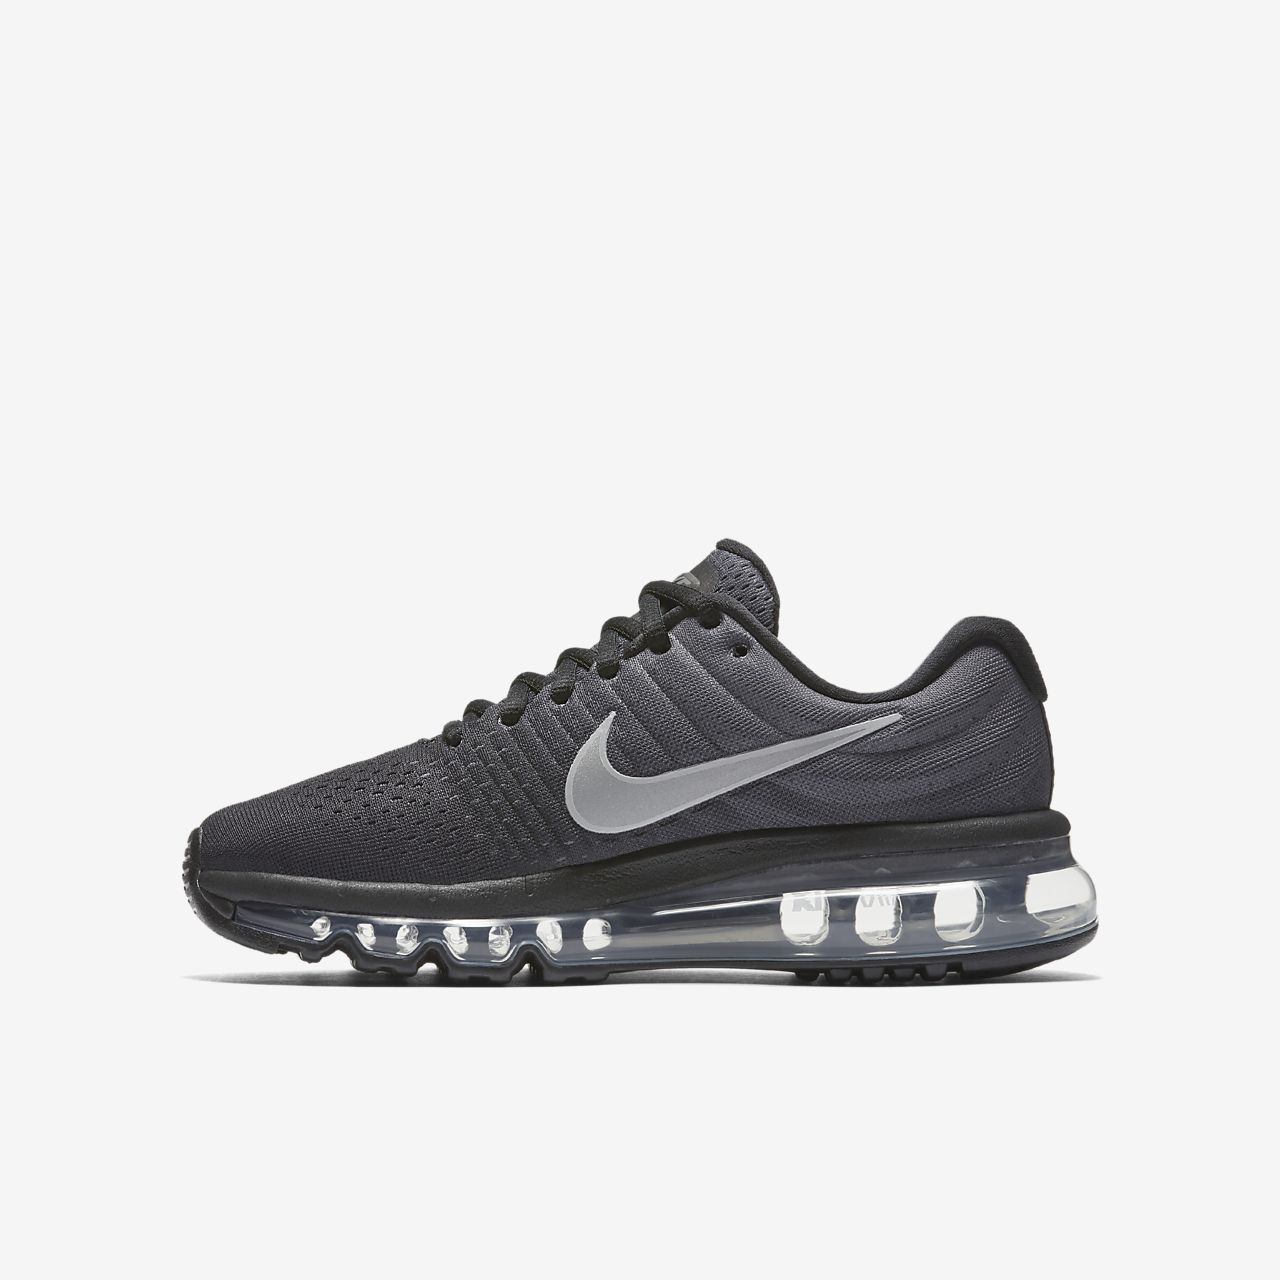 Nike Air Max 2017 Enfants vue Réduction en Chine vente fiable kDI4g